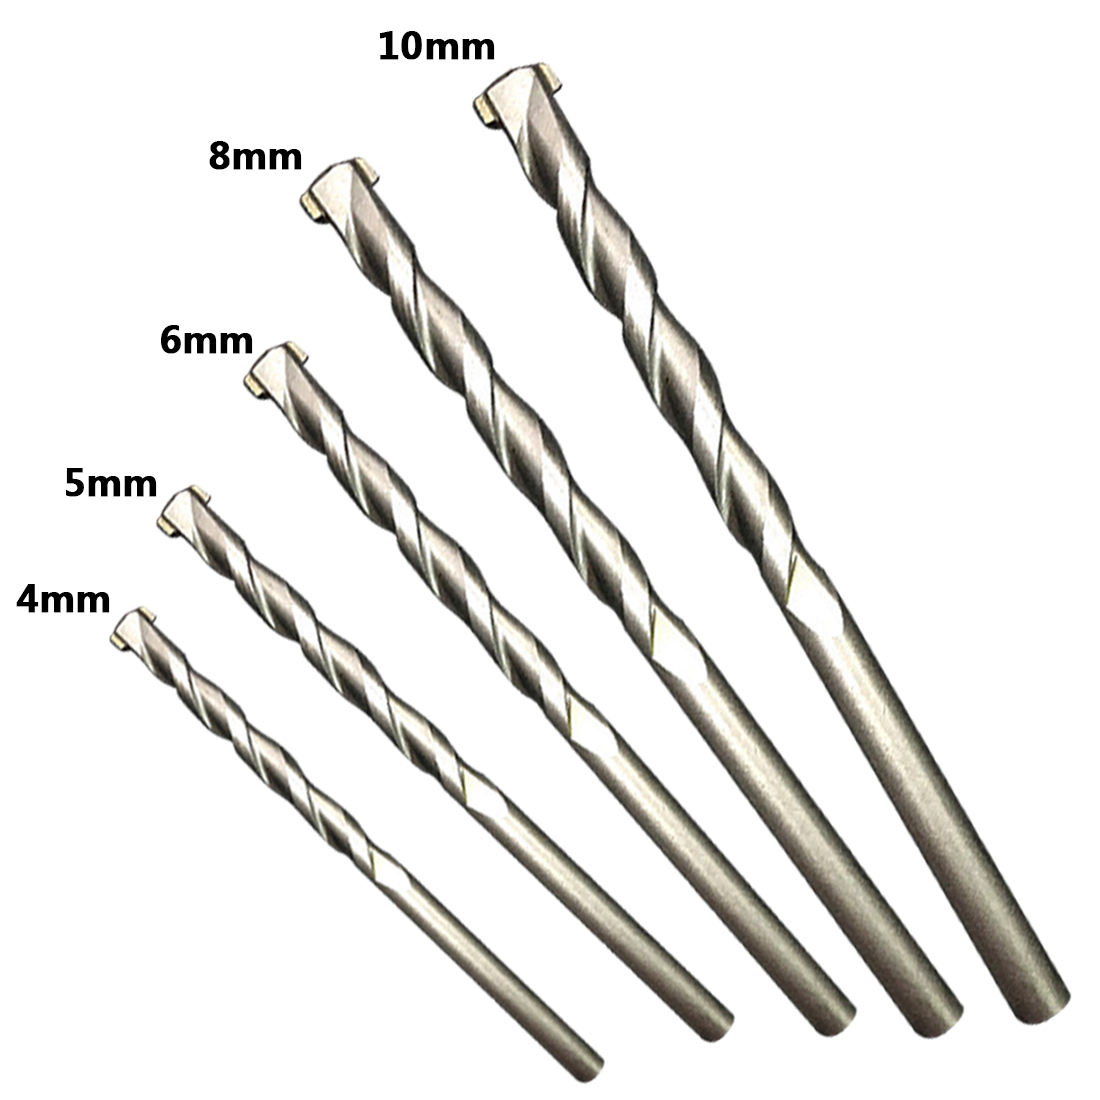 Round Shank Spiral Flute Rotary Masonry Drill Bits Set 4/5/6/8/10mm Galvanized Drills For Drilling Concrete Brick Tile